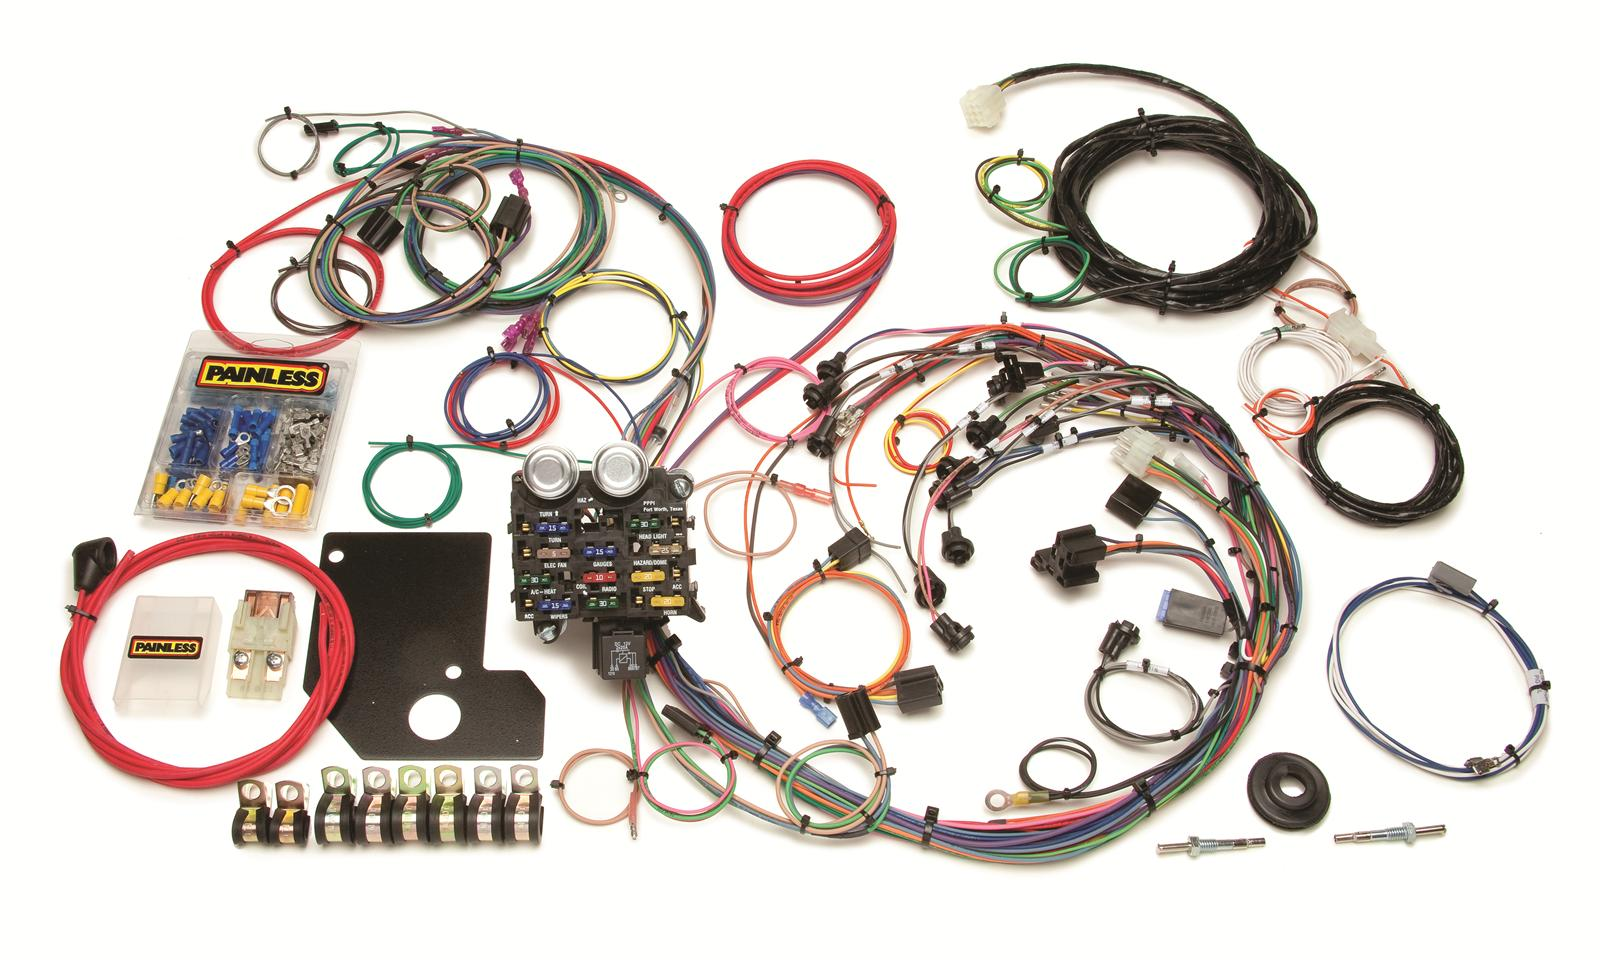 Painless Performance 21-Circuit Chevy II/Nova Harnesses 20110 - Free  Shipping on Orders Over $99 at Summit Racing